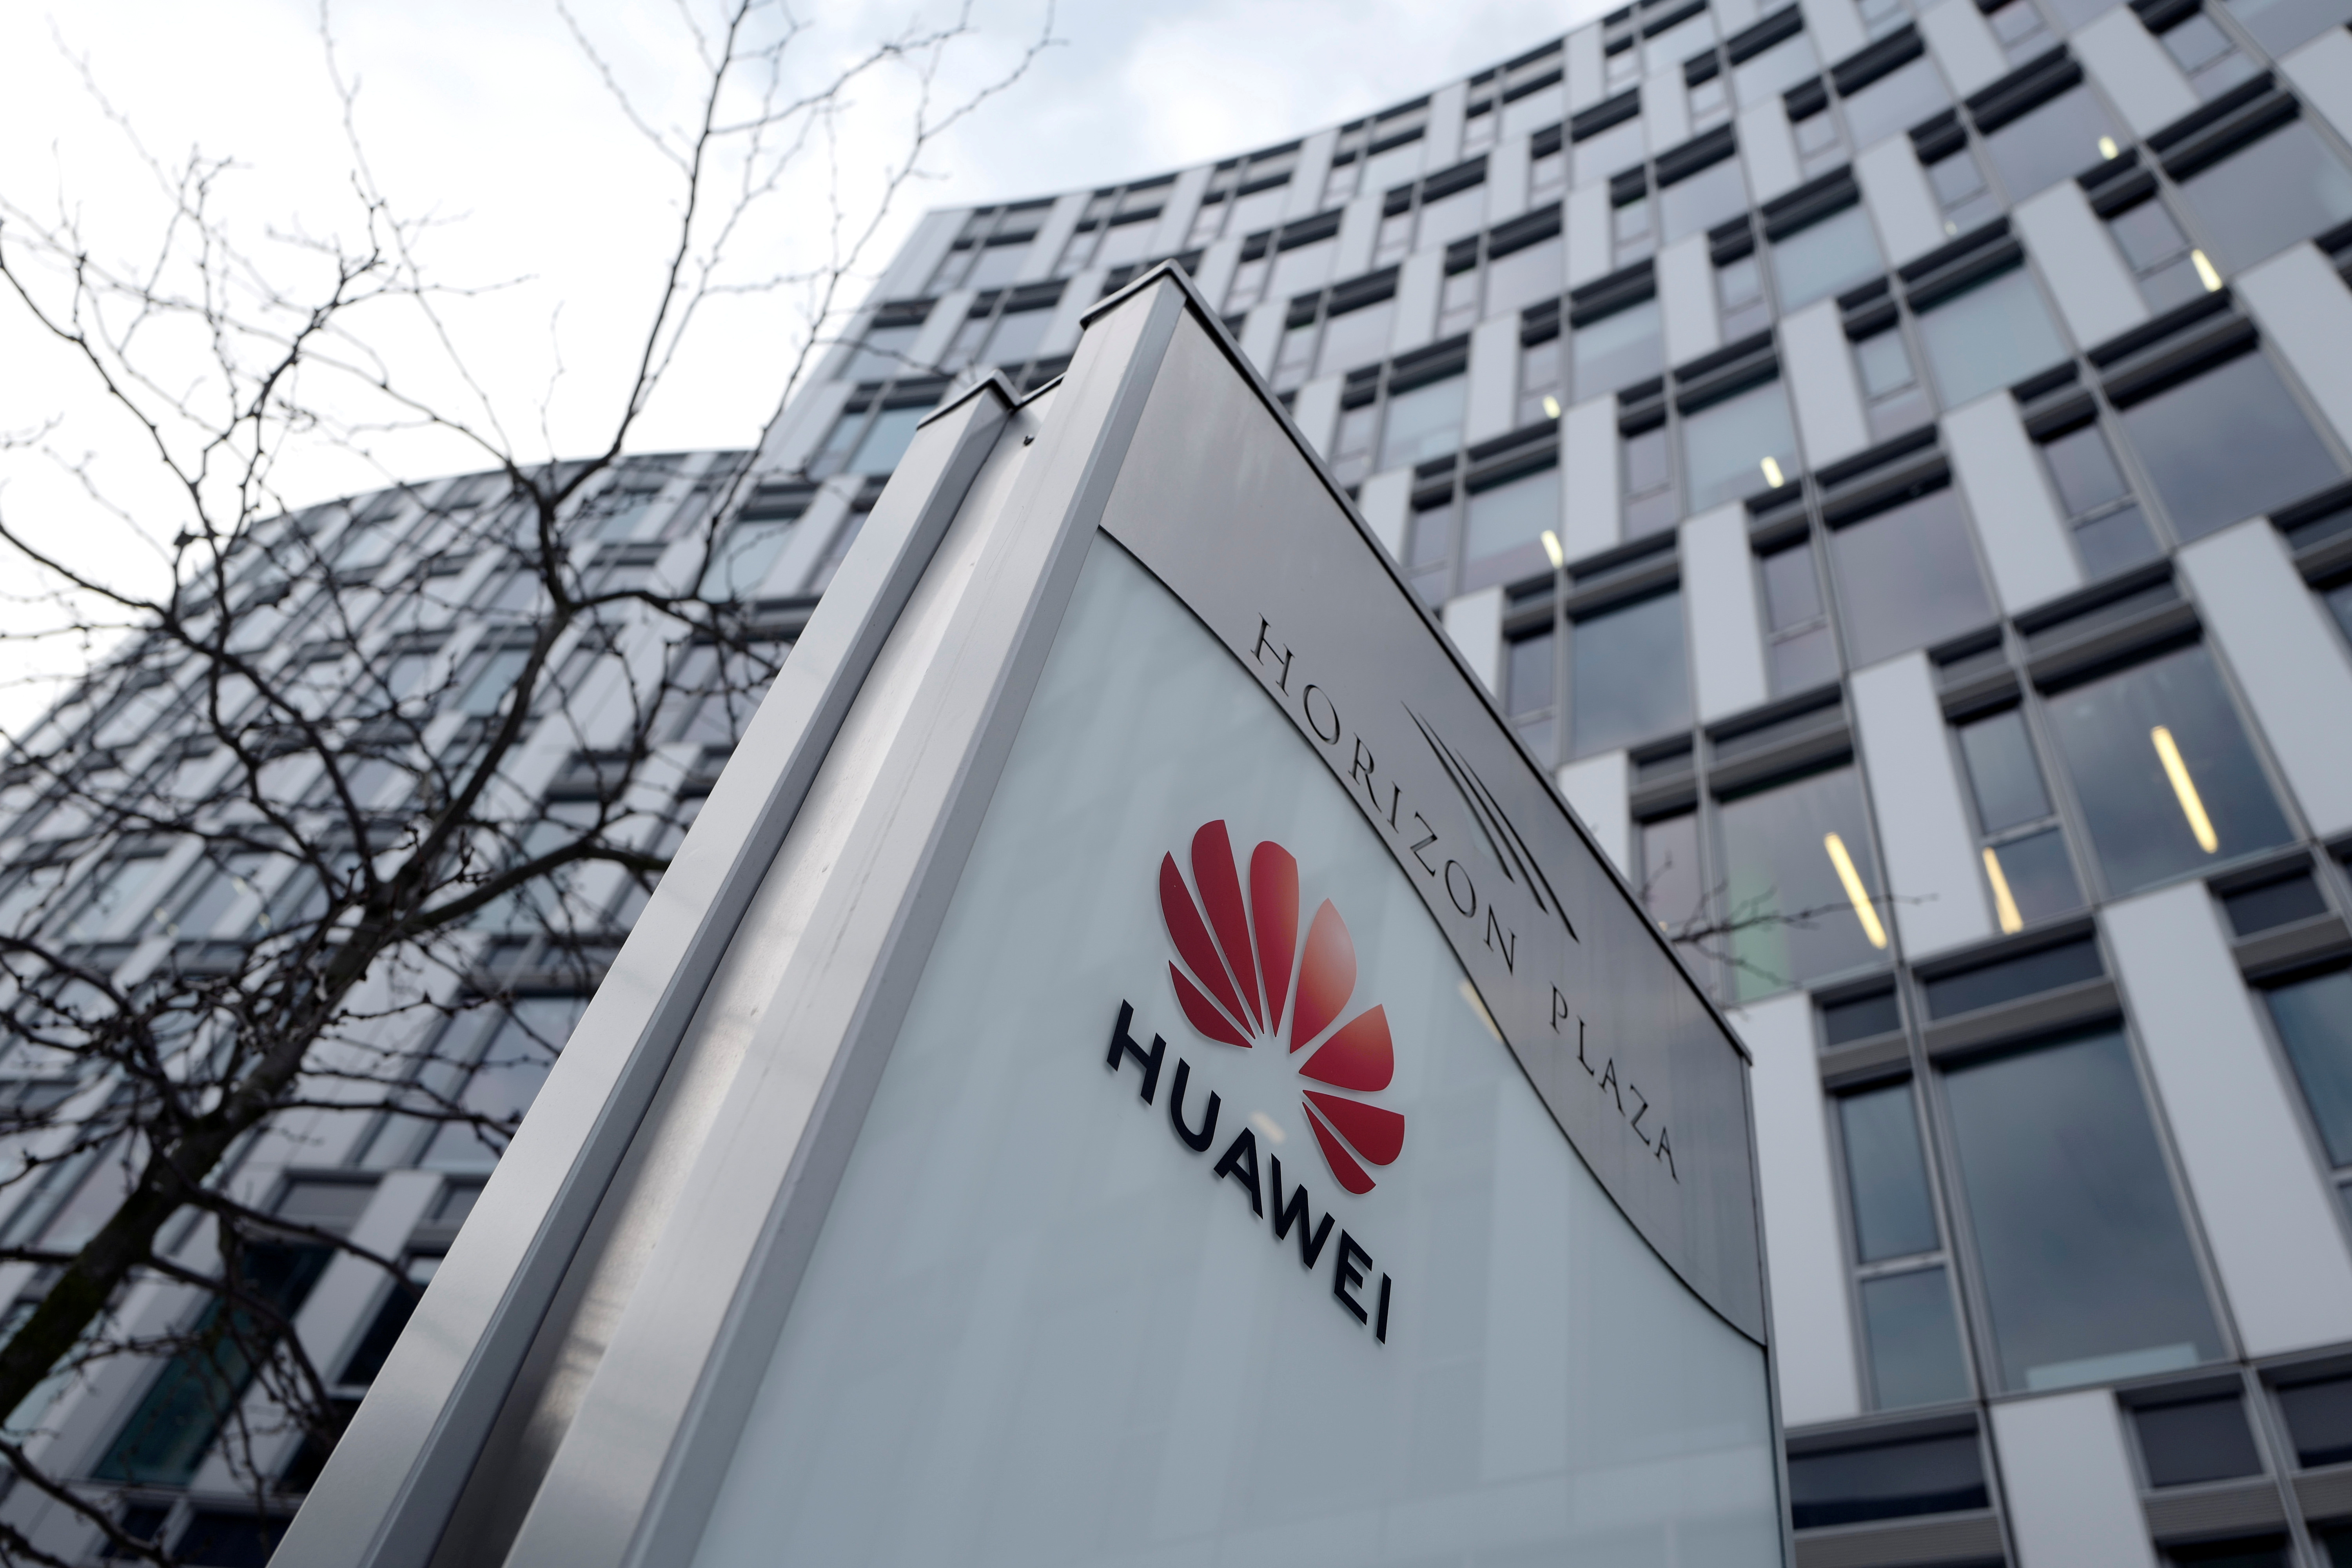 Logo of Huawei is seen in front of the local offices of Huawei in Warsaw, Poland January 11, 2019. REUTERS/Kacper Pempel/File Photo